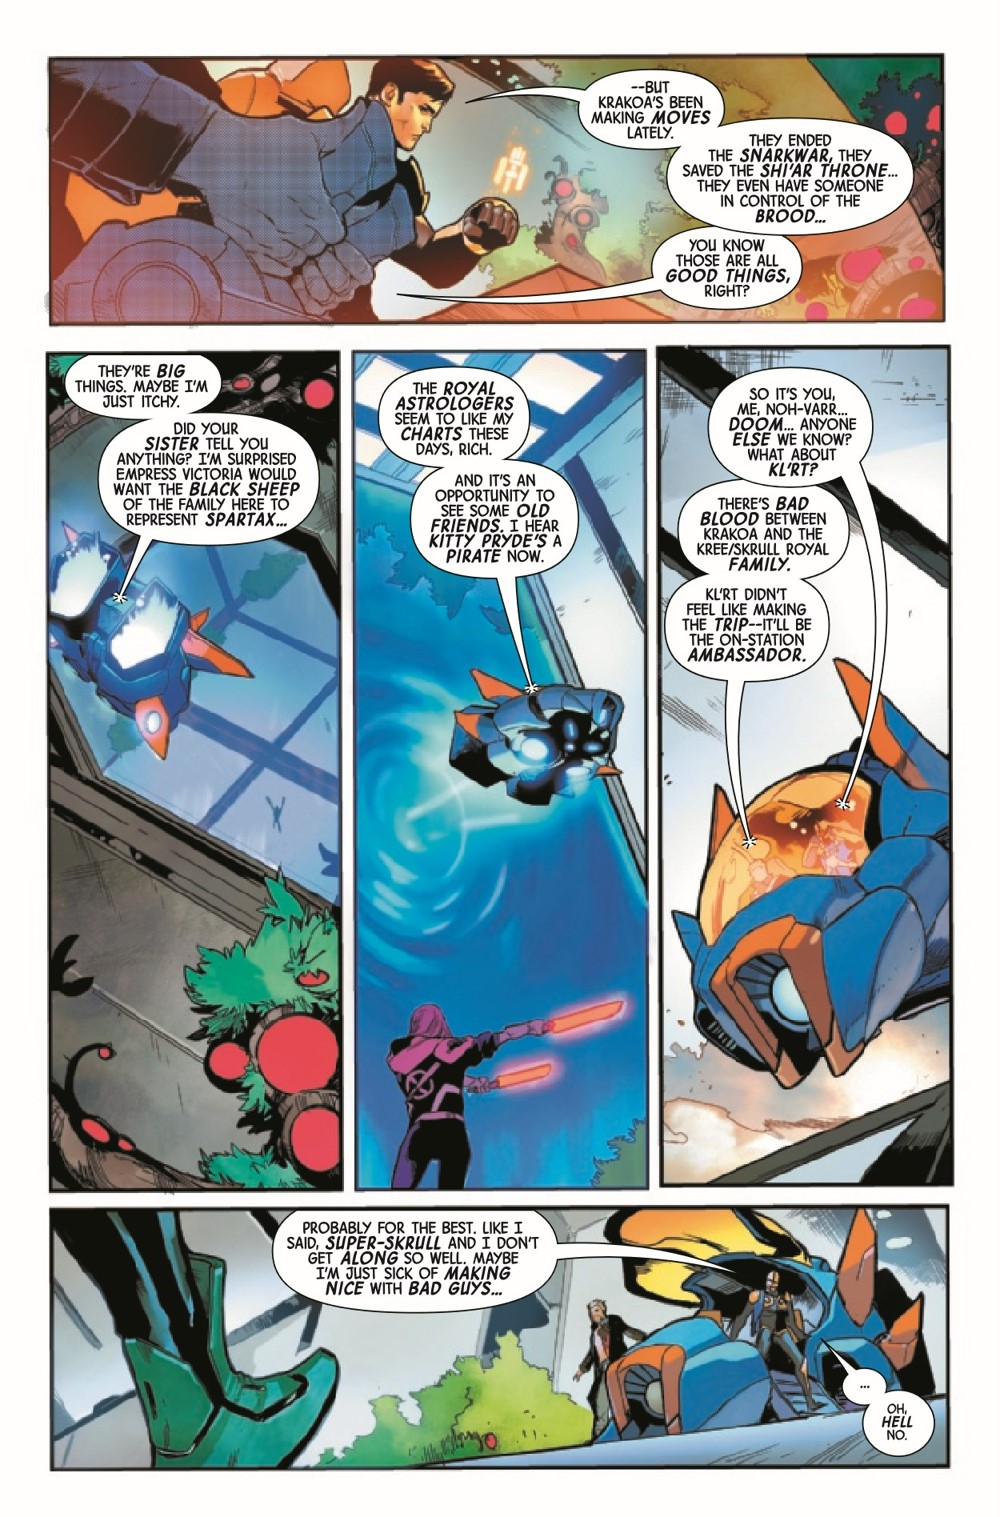 GARGAL2020015_Preview-4 ComicList Previews: GUARDIANS OF THE GALAXY #15